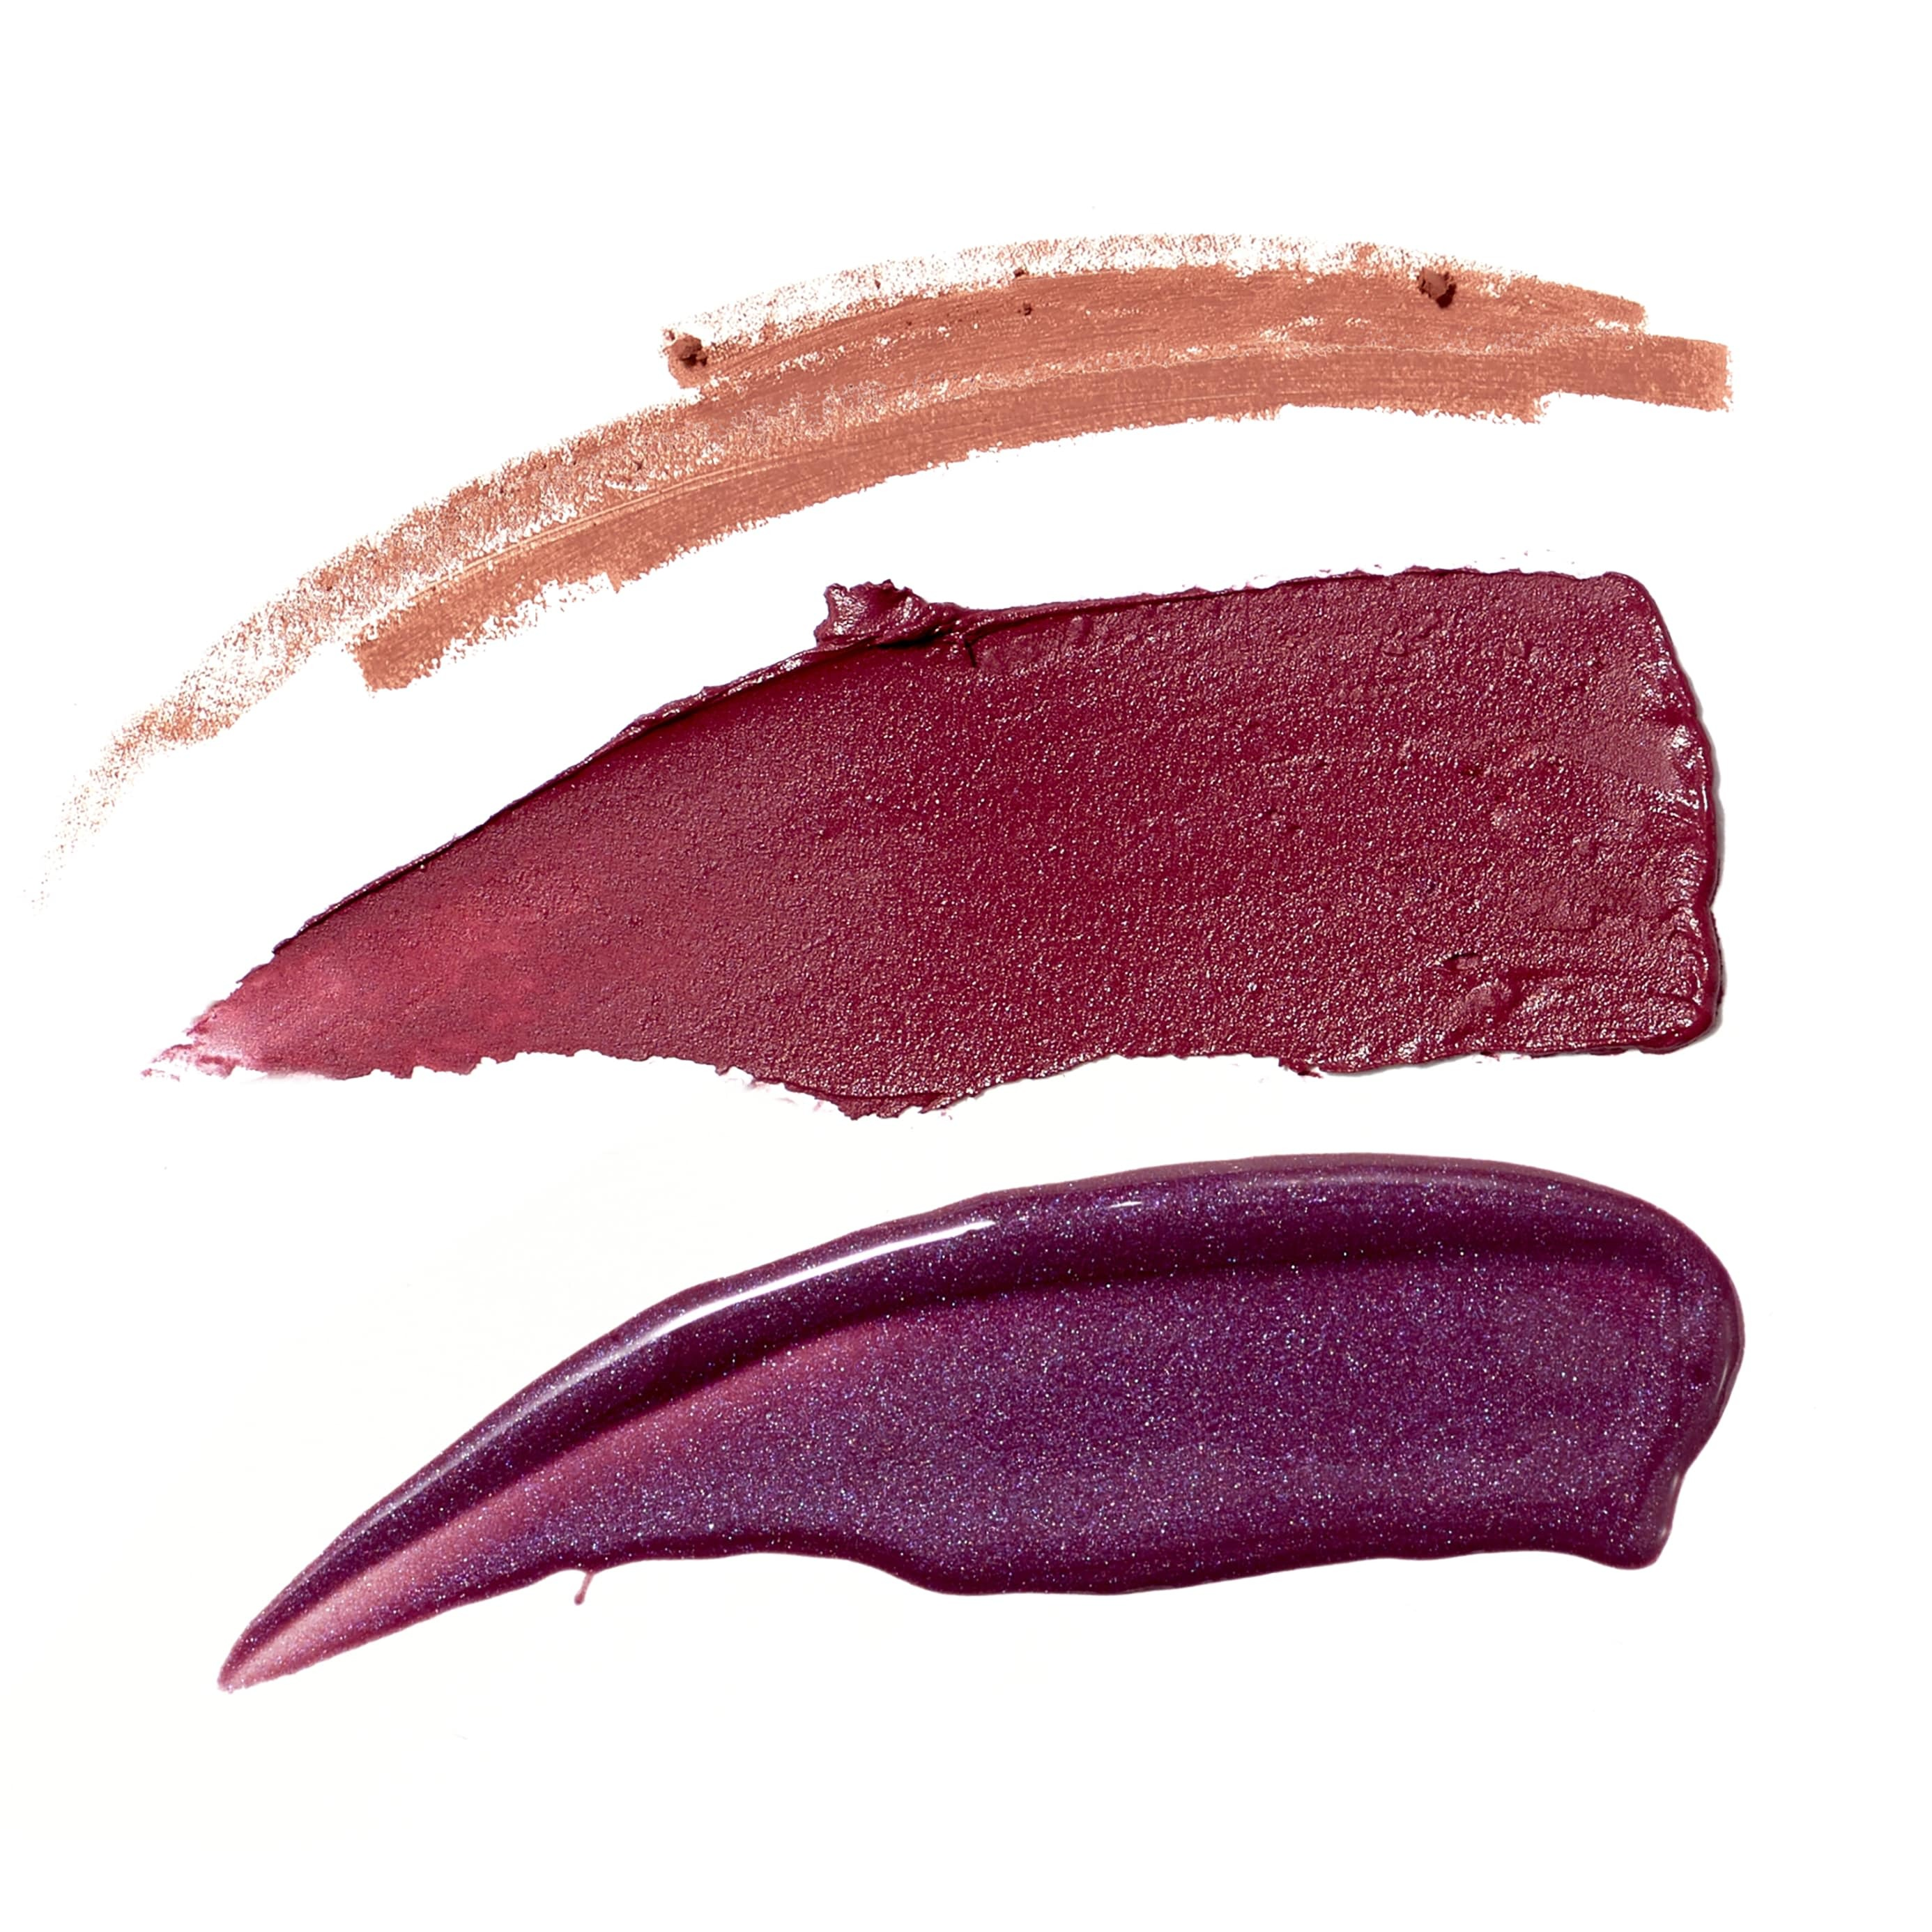 Berry Fierce - plum with pink undertones, light pink brown, plum